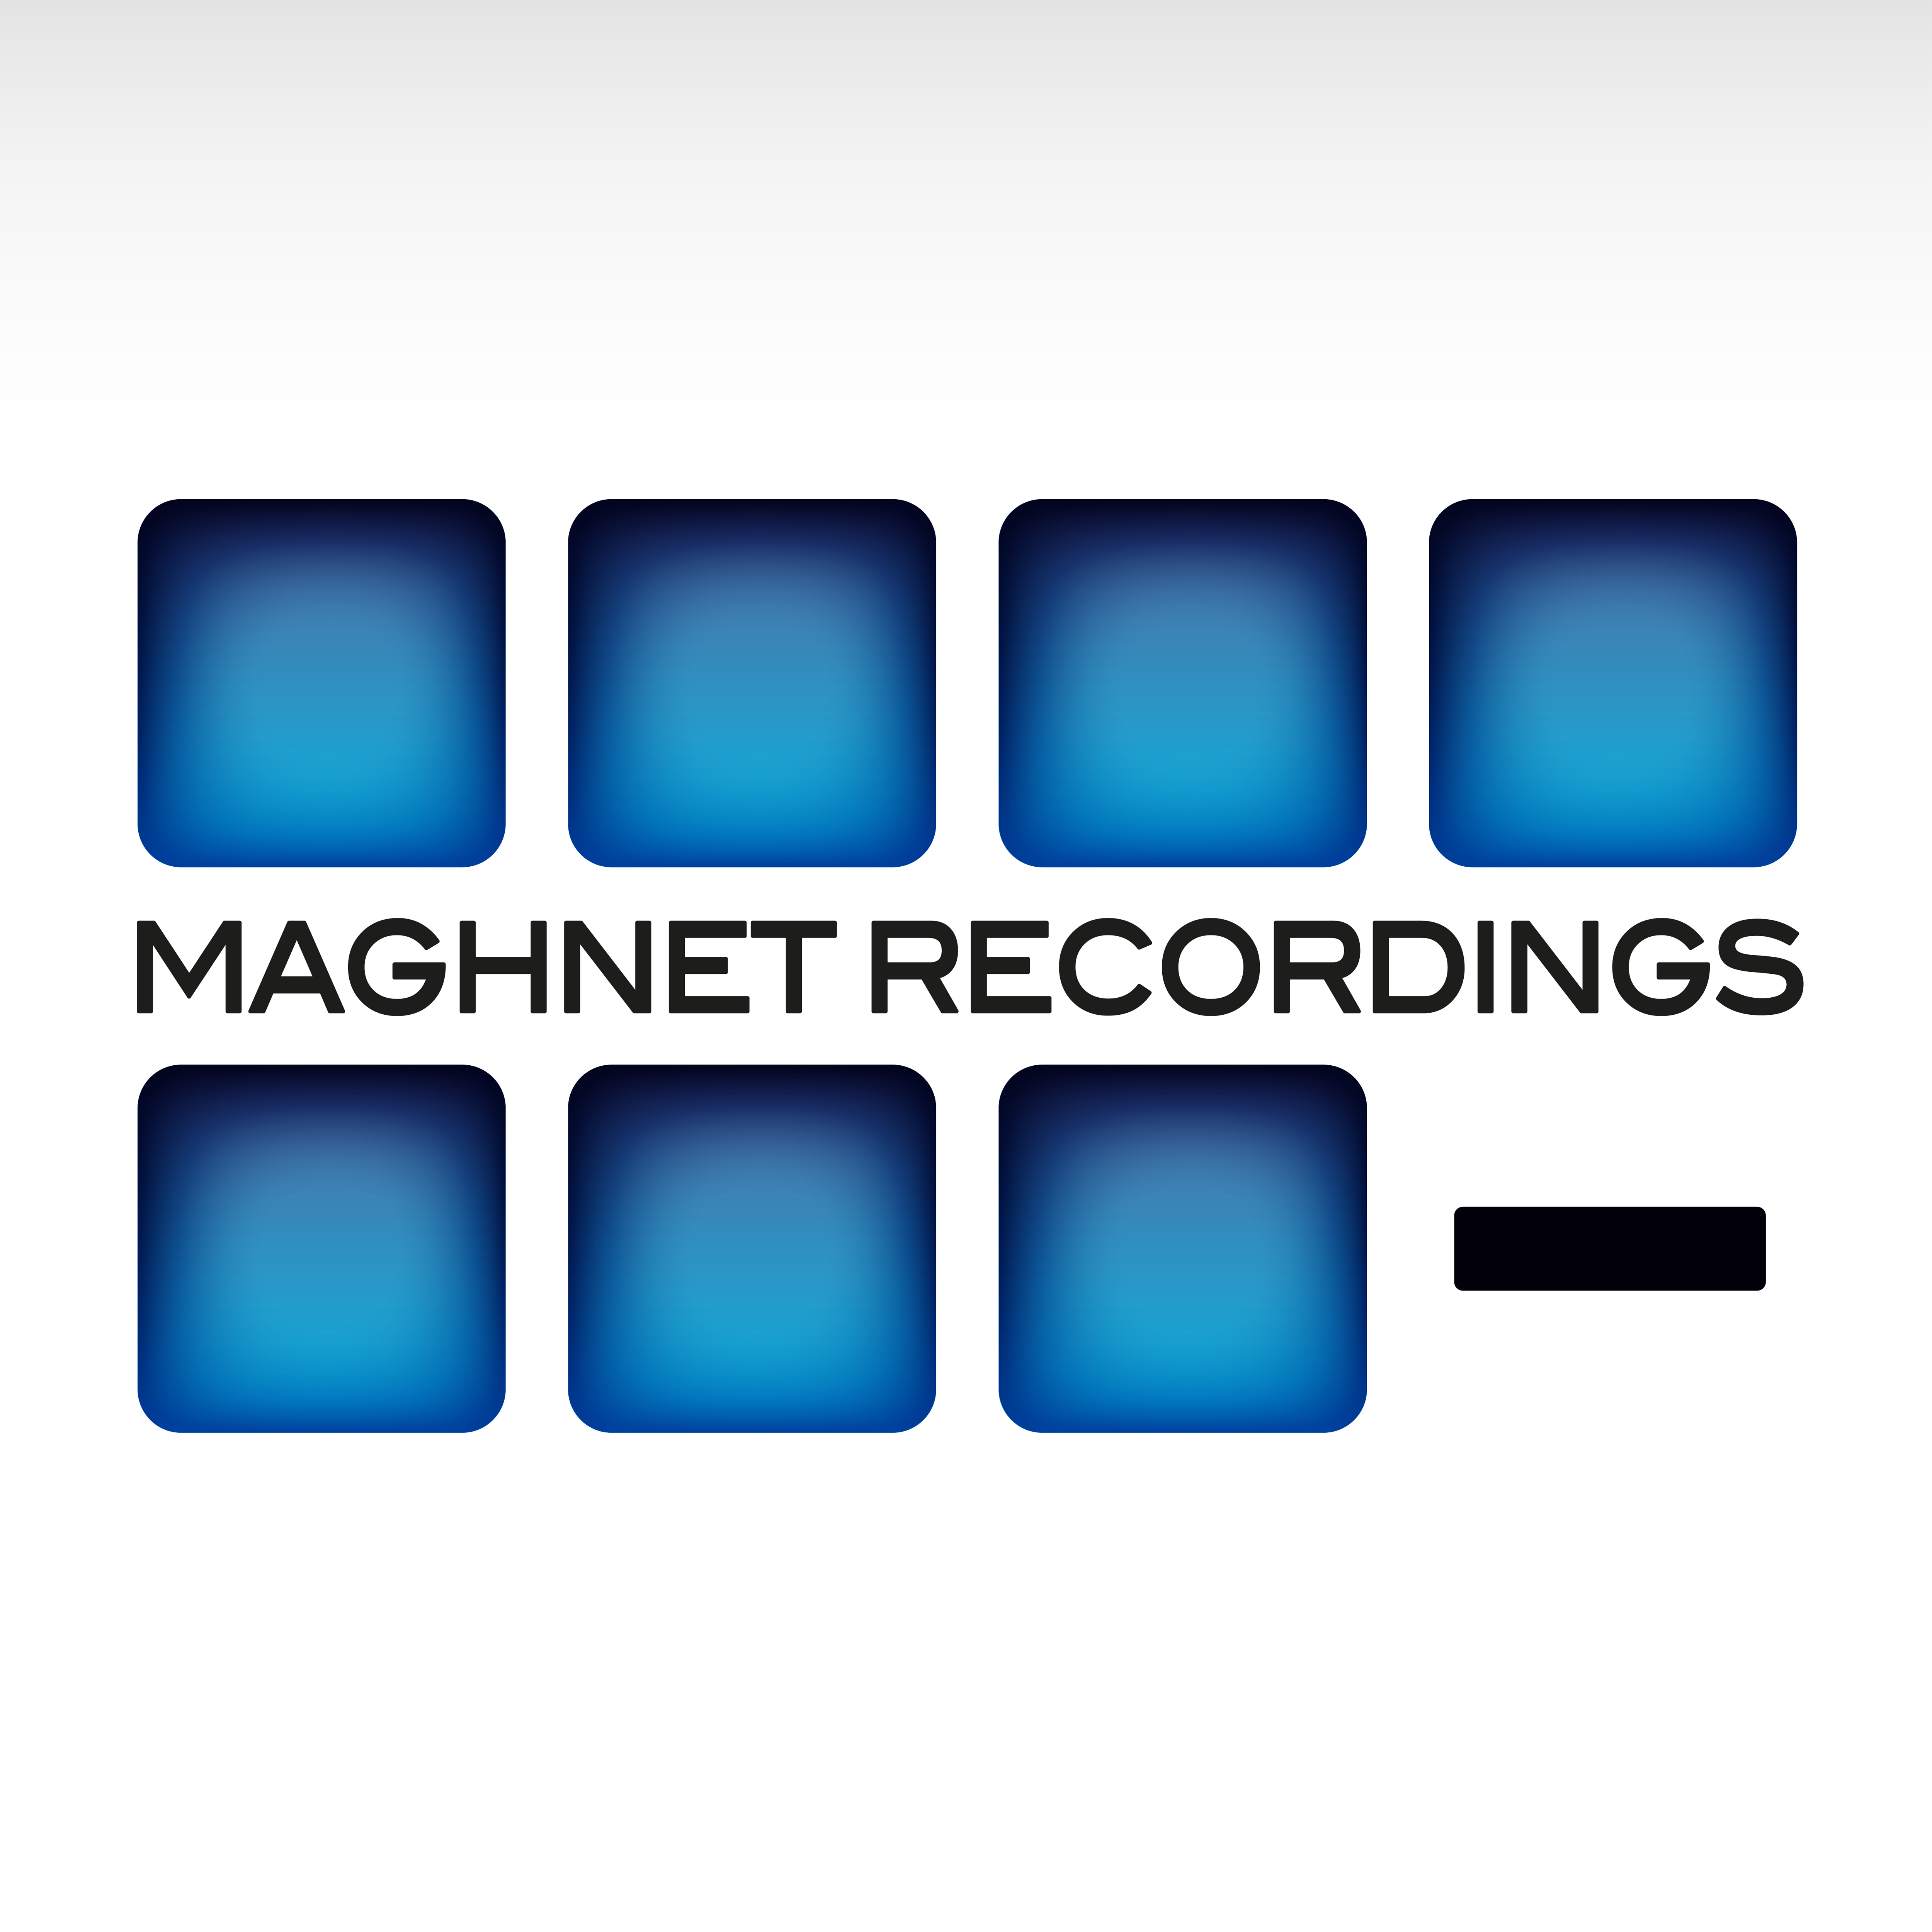 Maghnet Recordings